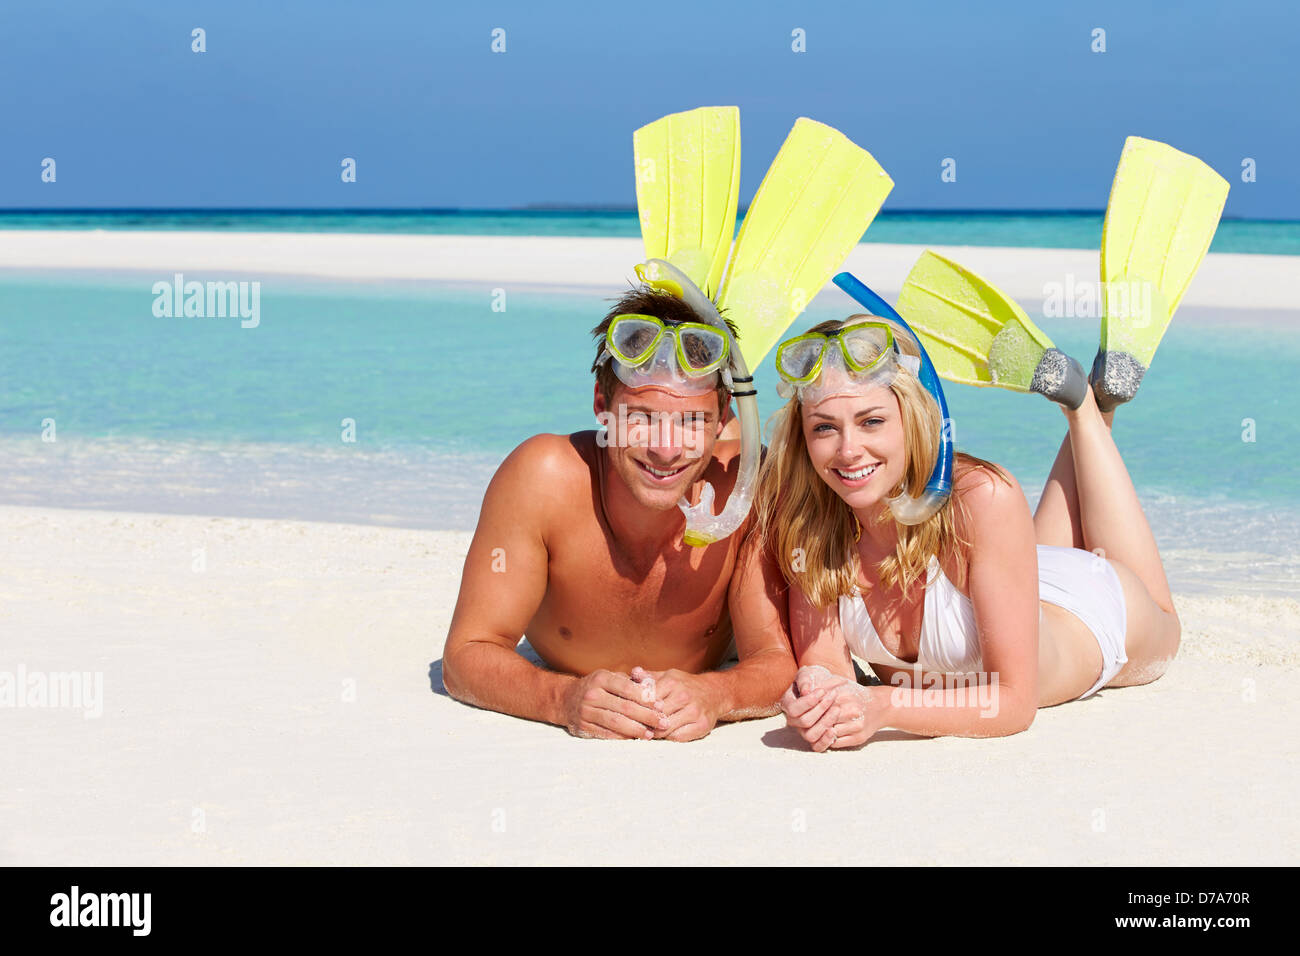 Couple With Snorkels Enjoying Beach Holiday - Stock Image